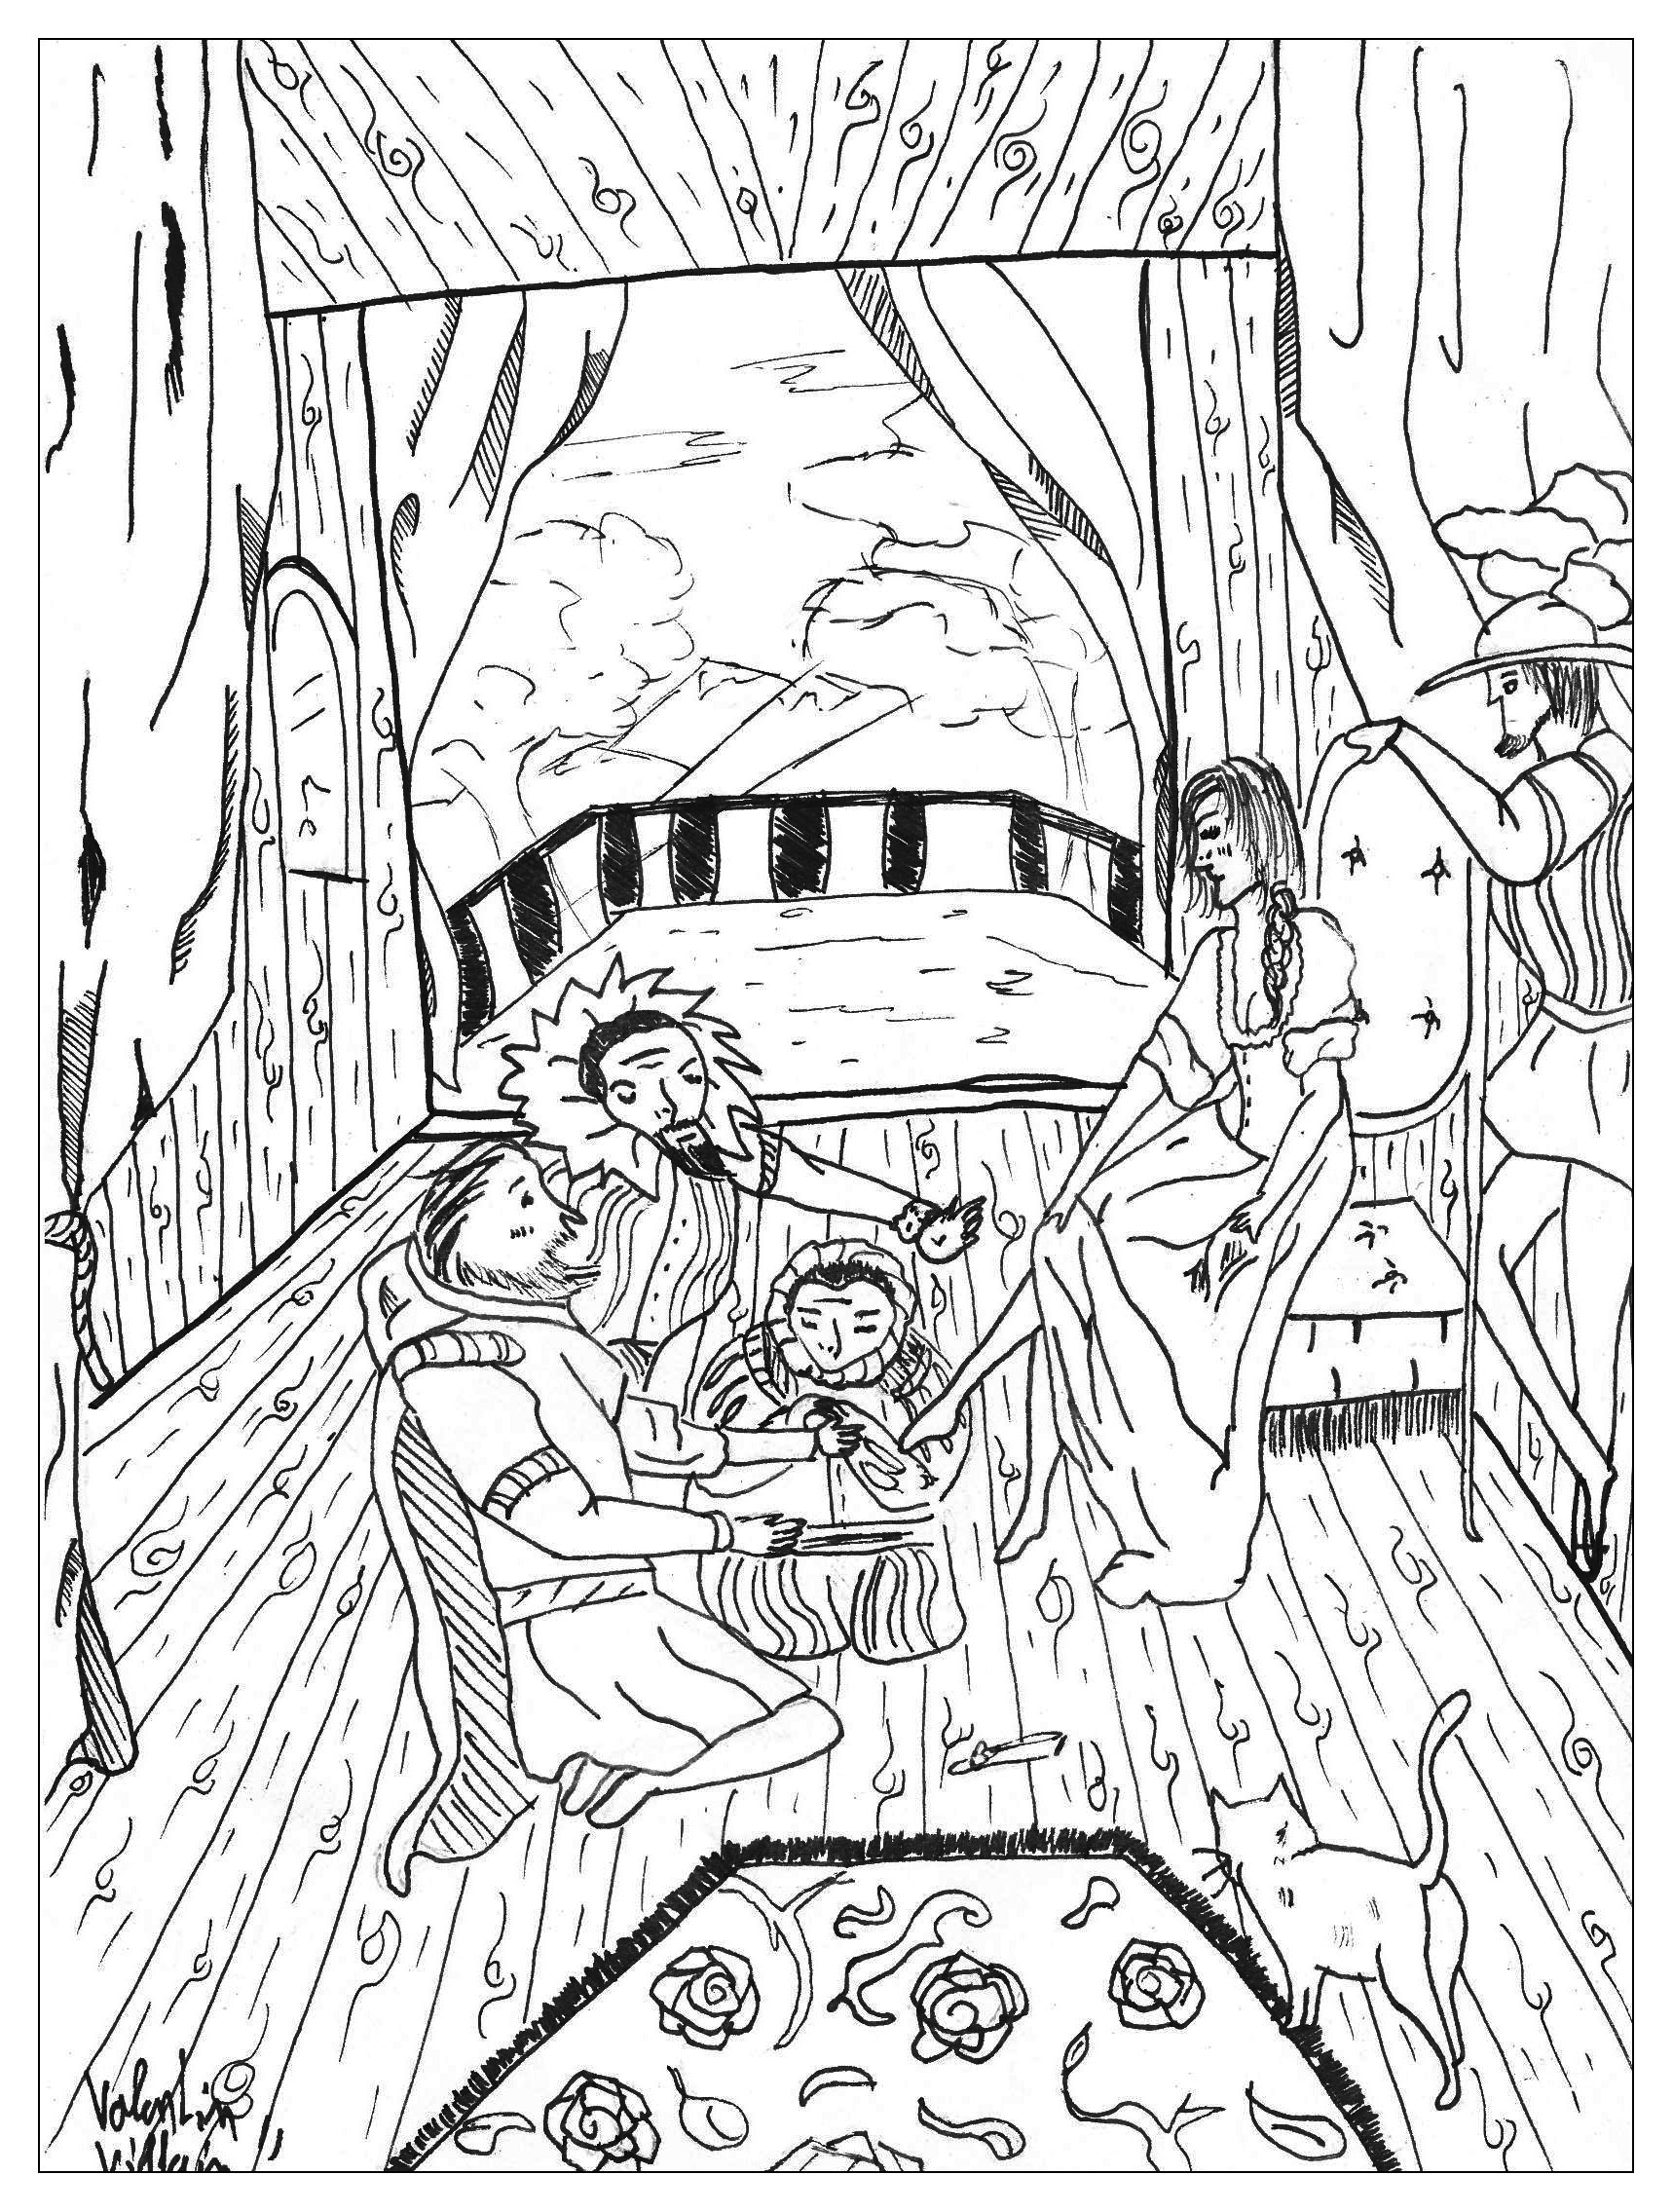 The coloring page of the famous story 'Cinderella'.